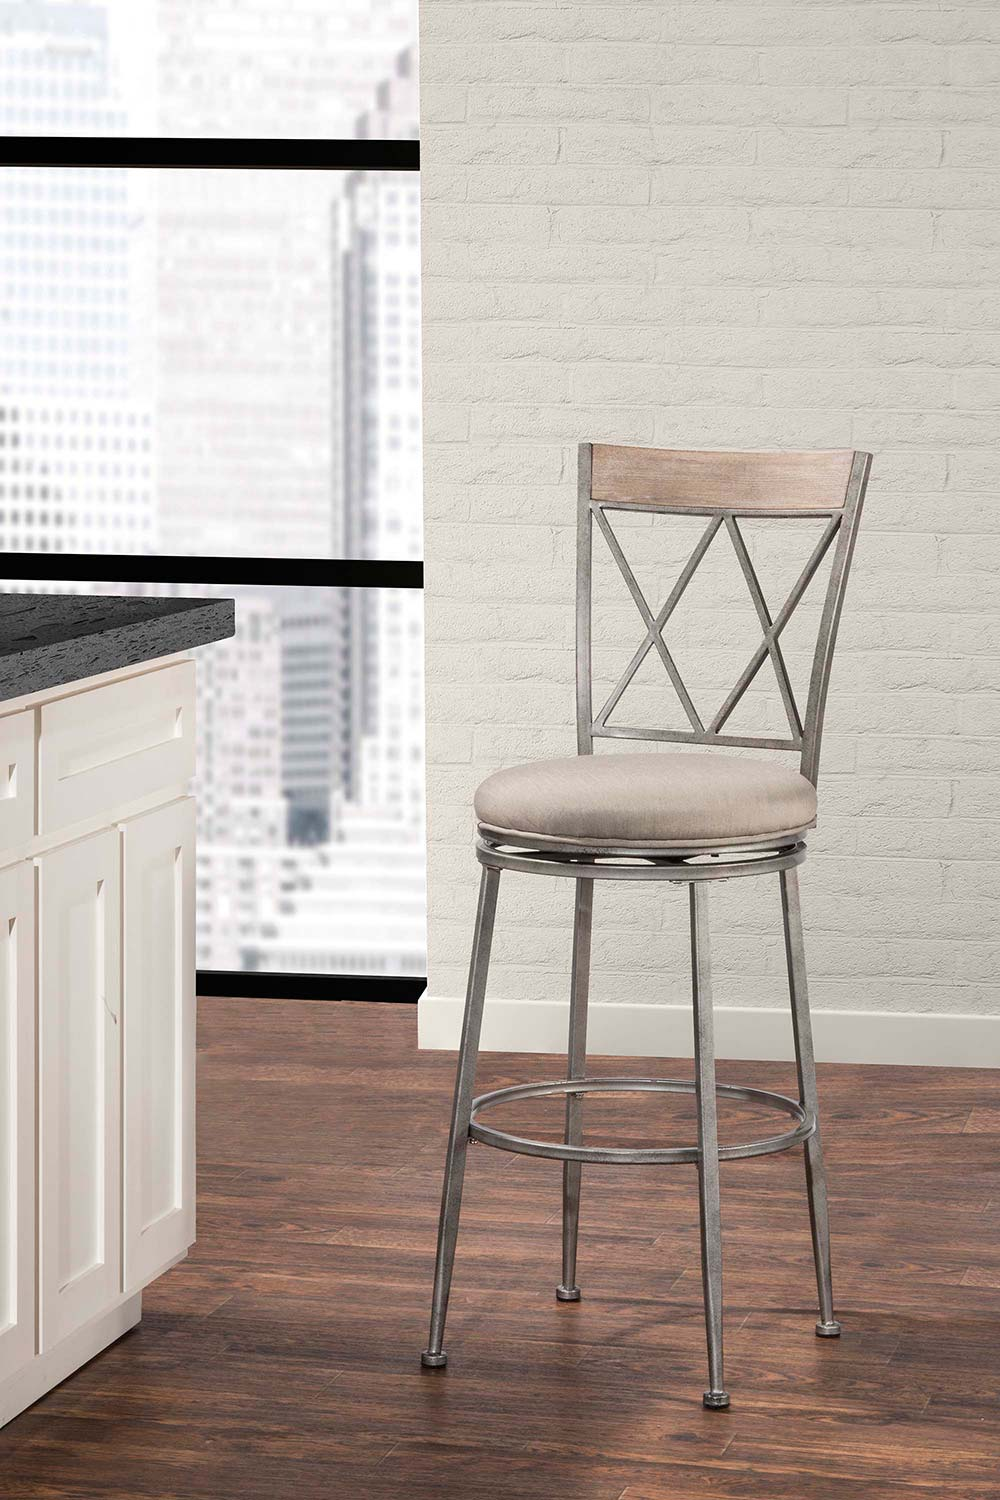 Hillsdale Stewart Indoor/Outdoor Swivel Counter Stool - Aged Pewter